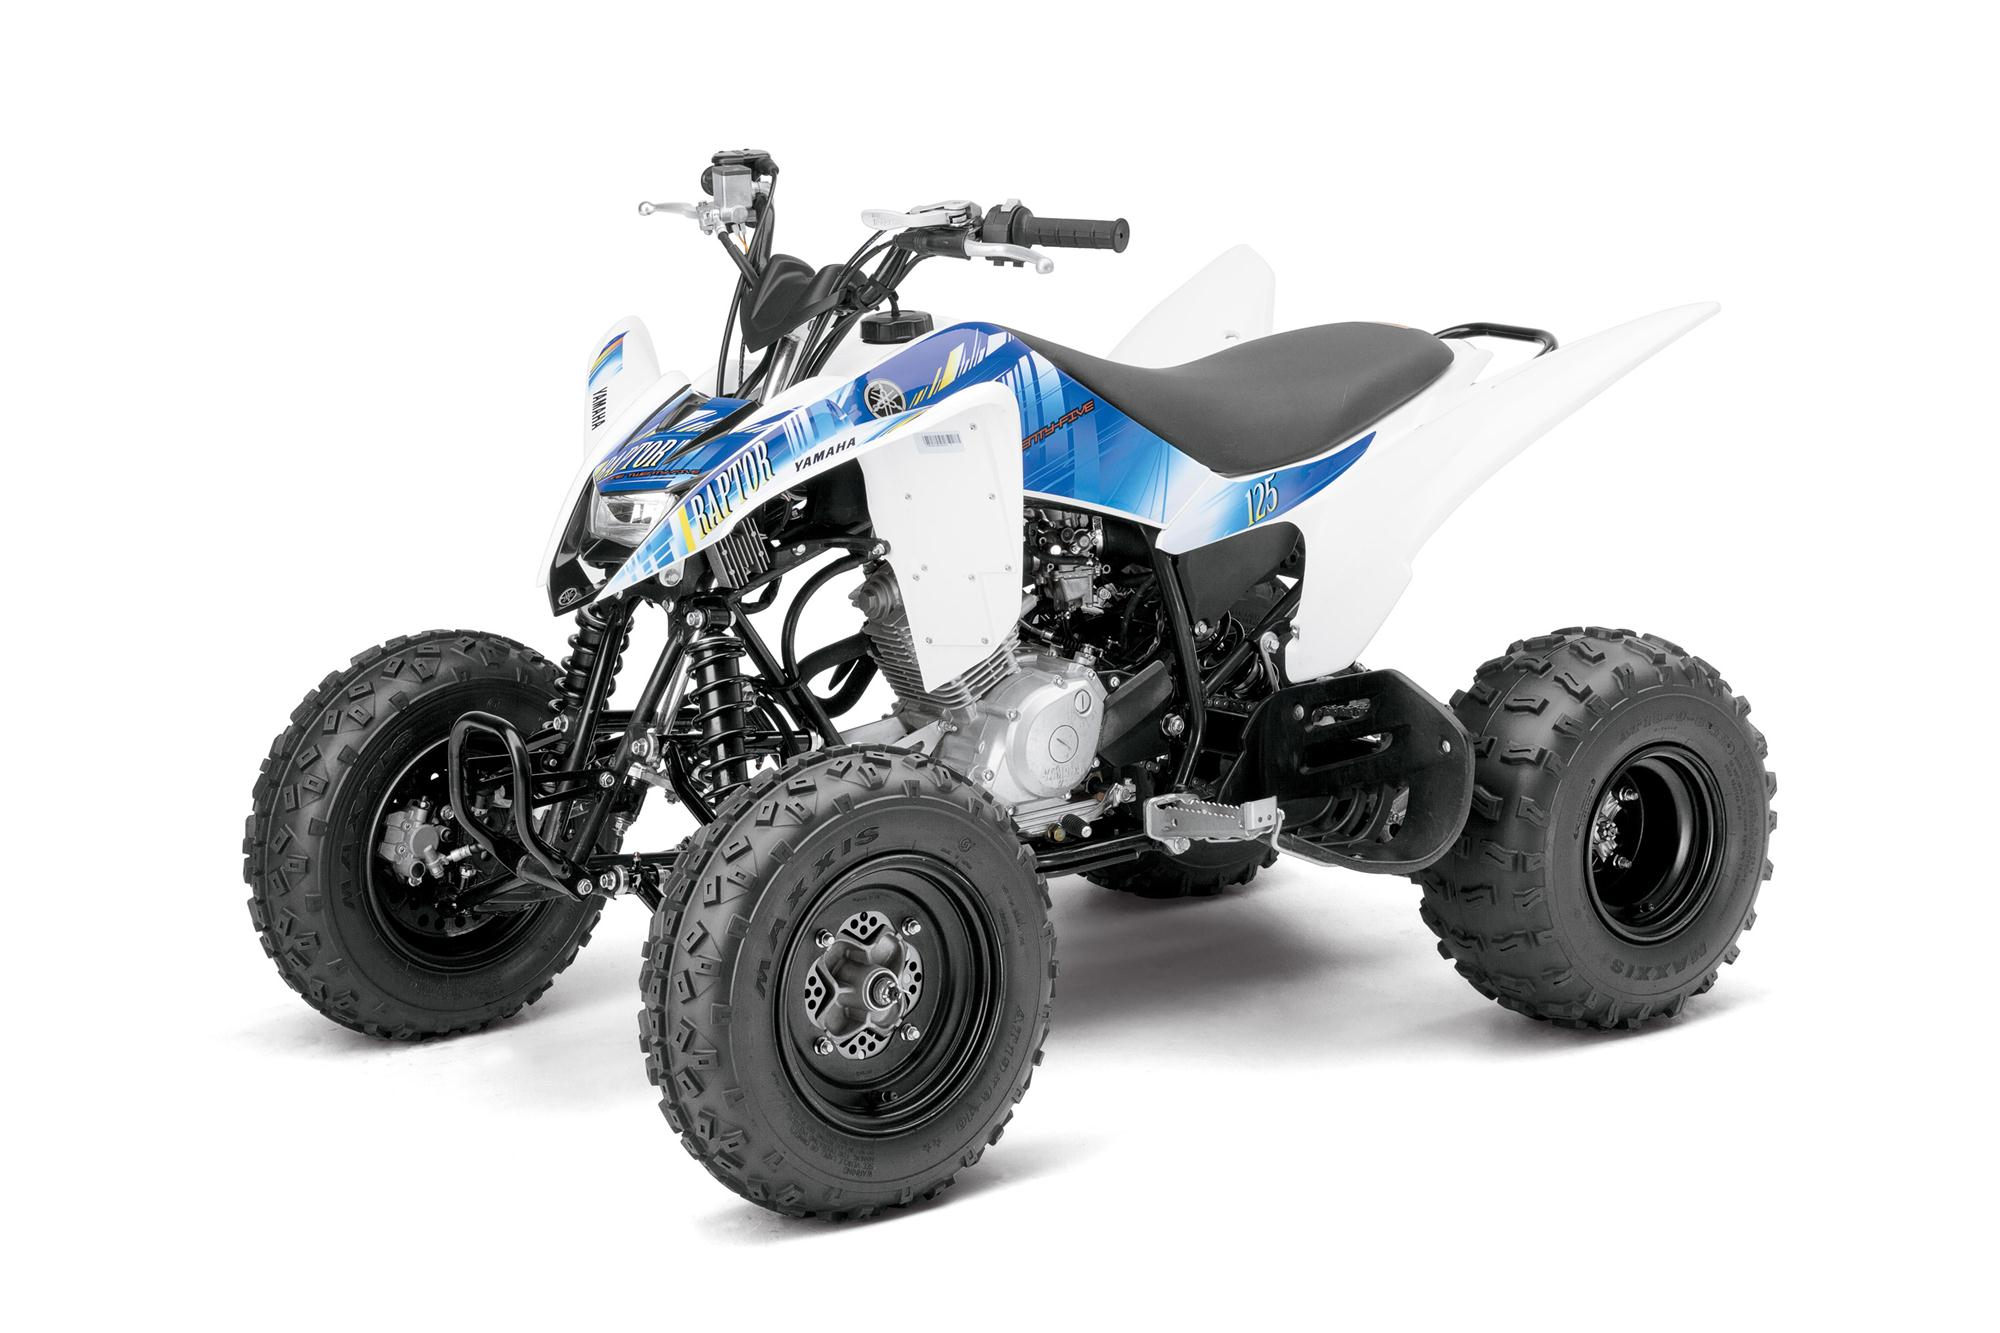 2013 yamaha raptor 125 the entry level sport atv. Black Bedroom Furniture Sets. Home Design Ideas